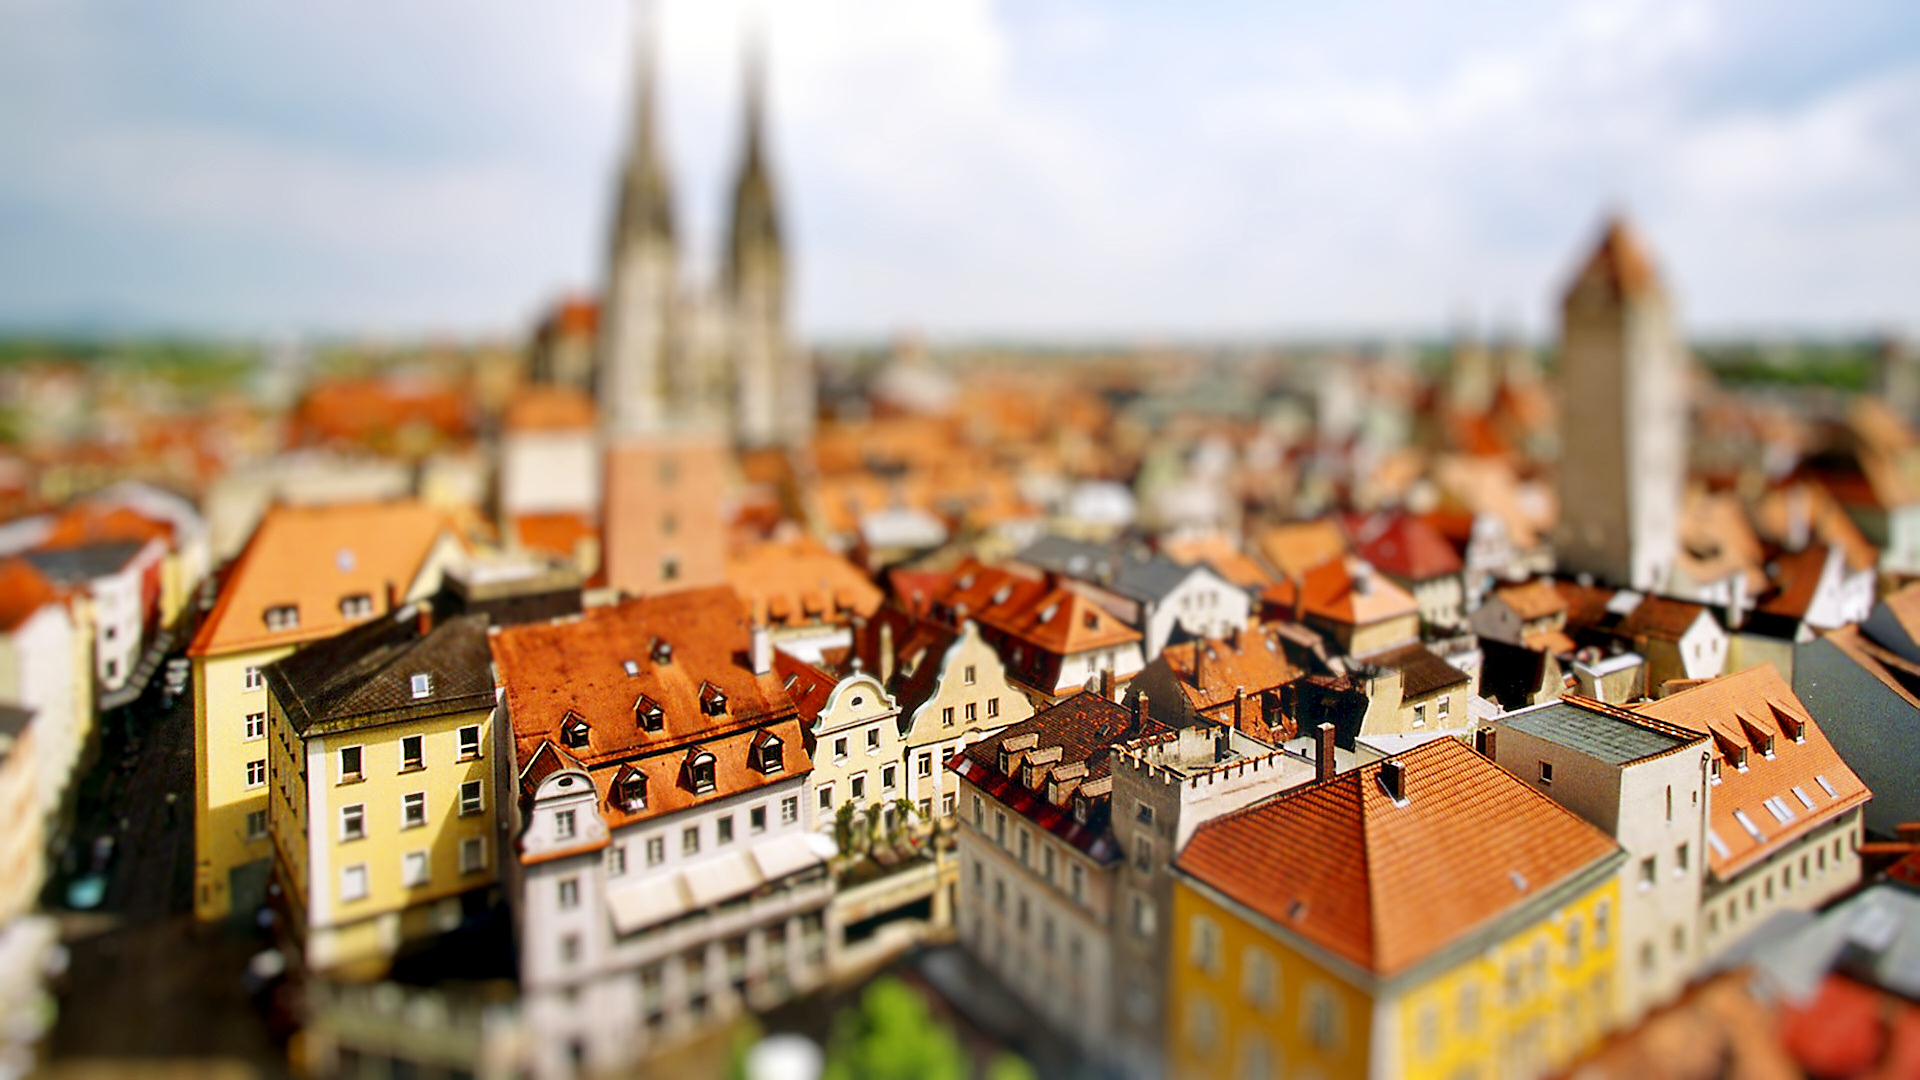 ... Tilt Shift Wallpaper; Tilt Shift Wallpaper